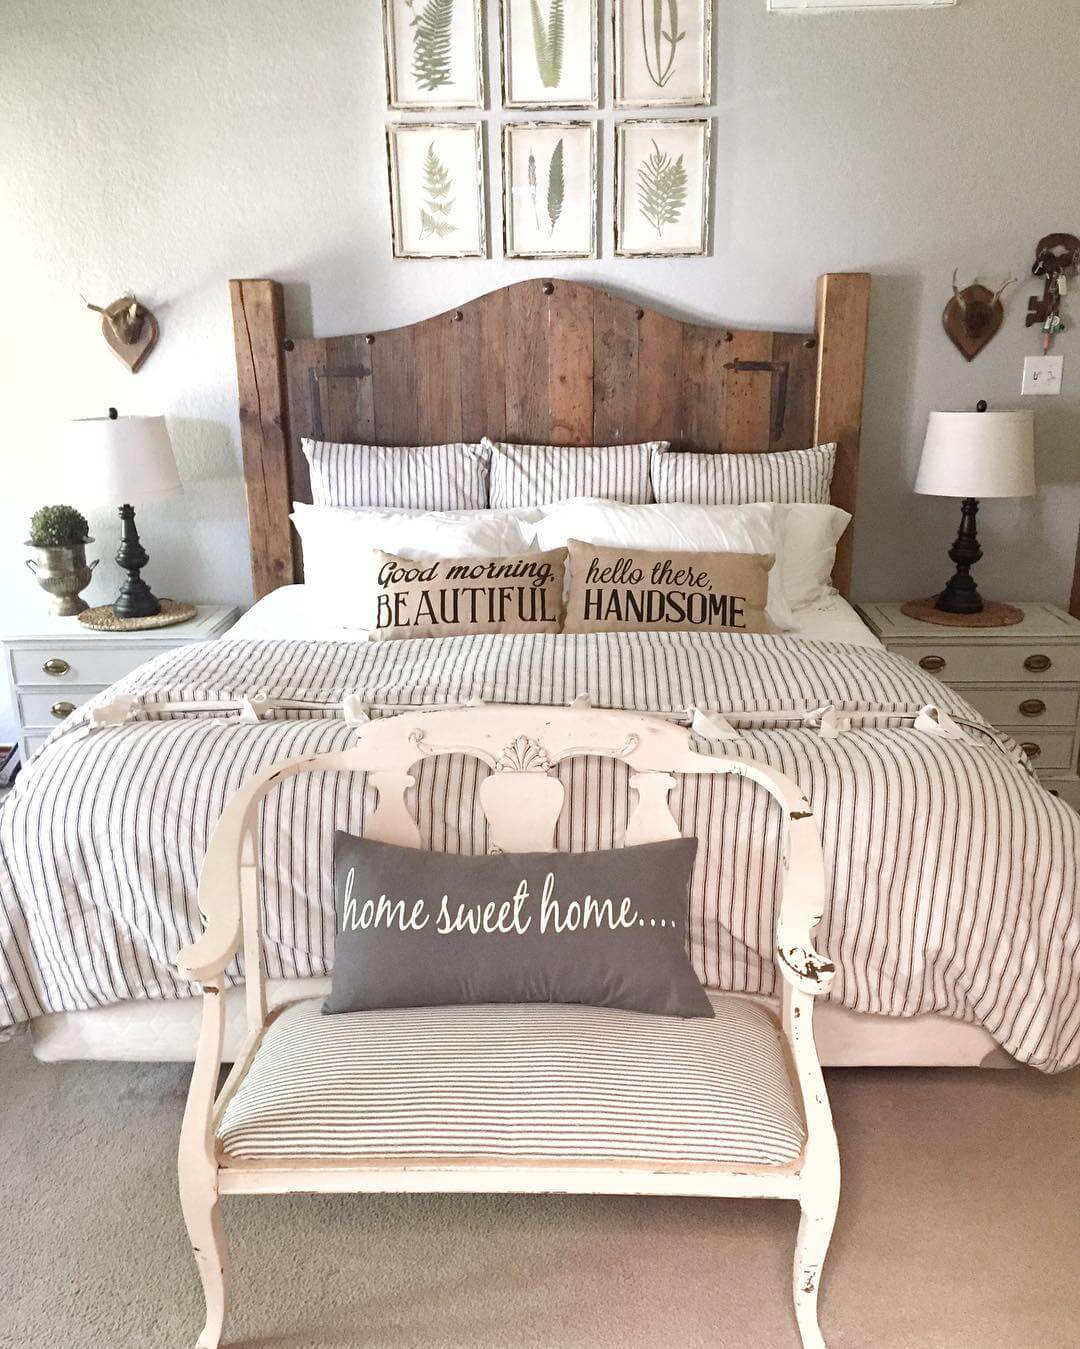 Charmant Homestead Chic Romantic Bedroom Decor Ideas On A Budget